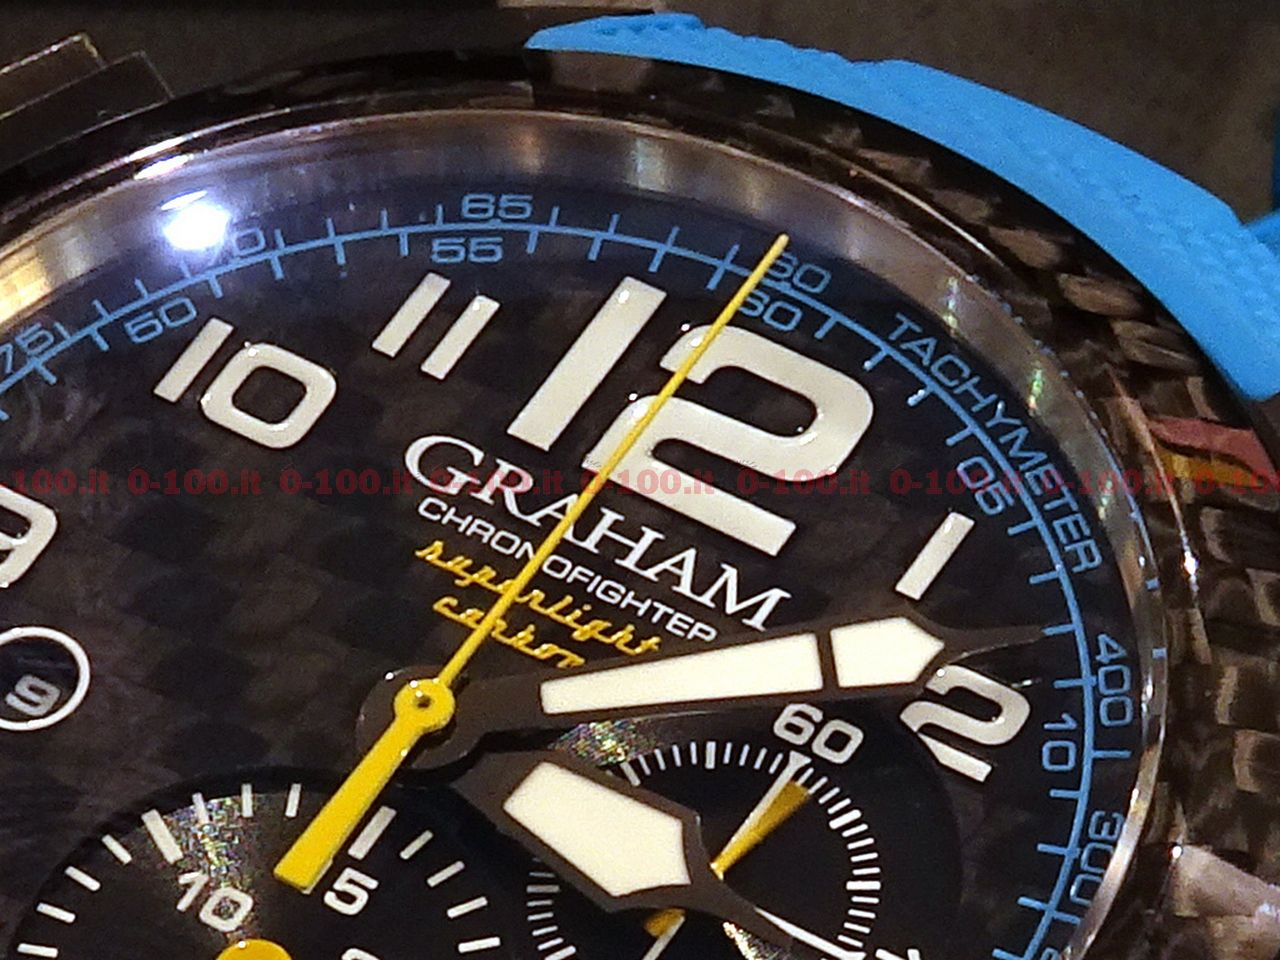 baselworld-2017-GRAHAM CHRONOFIGHTER SUPERLIGHT -prezzo-price_0-1007